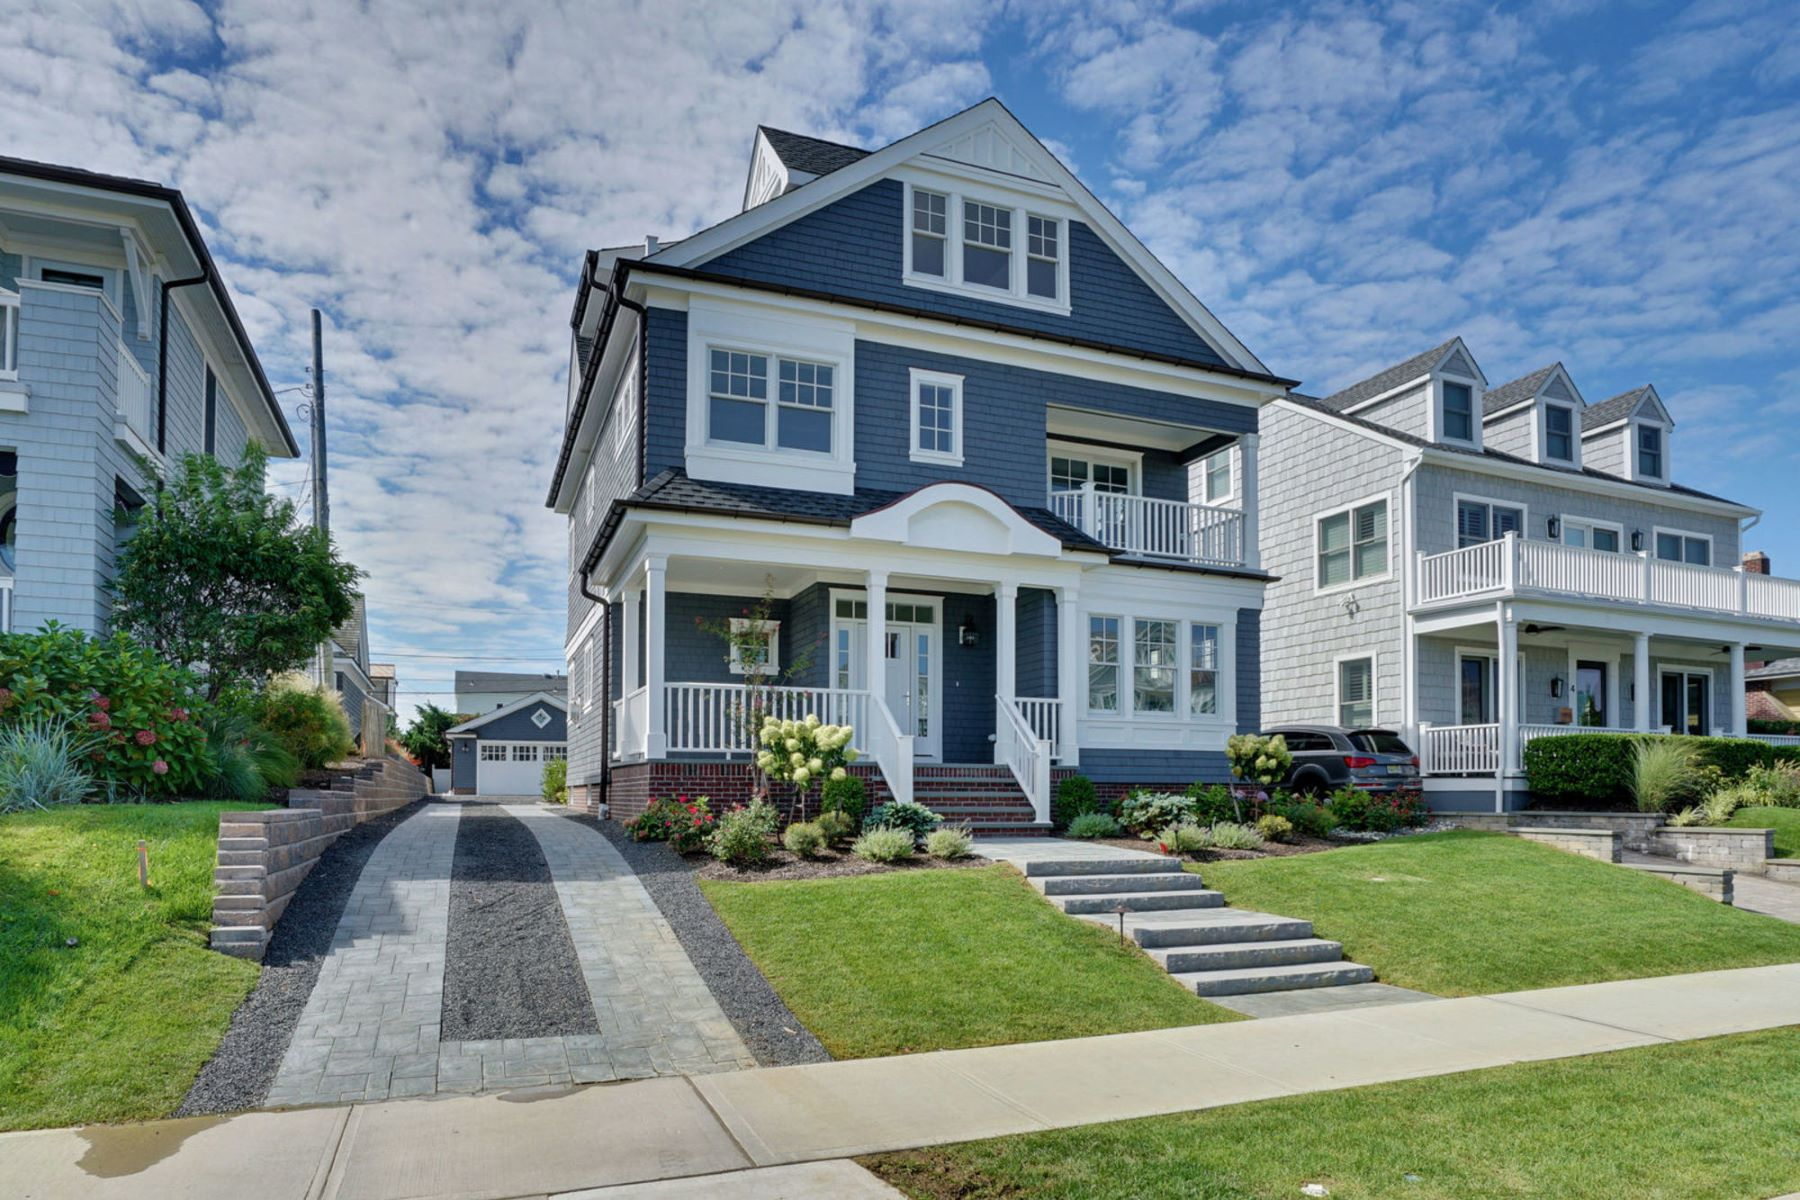 Single Family Homes for Sale at New Construction 2 Beacon Boulevard Sea Girt, New Jersey 08750 United States